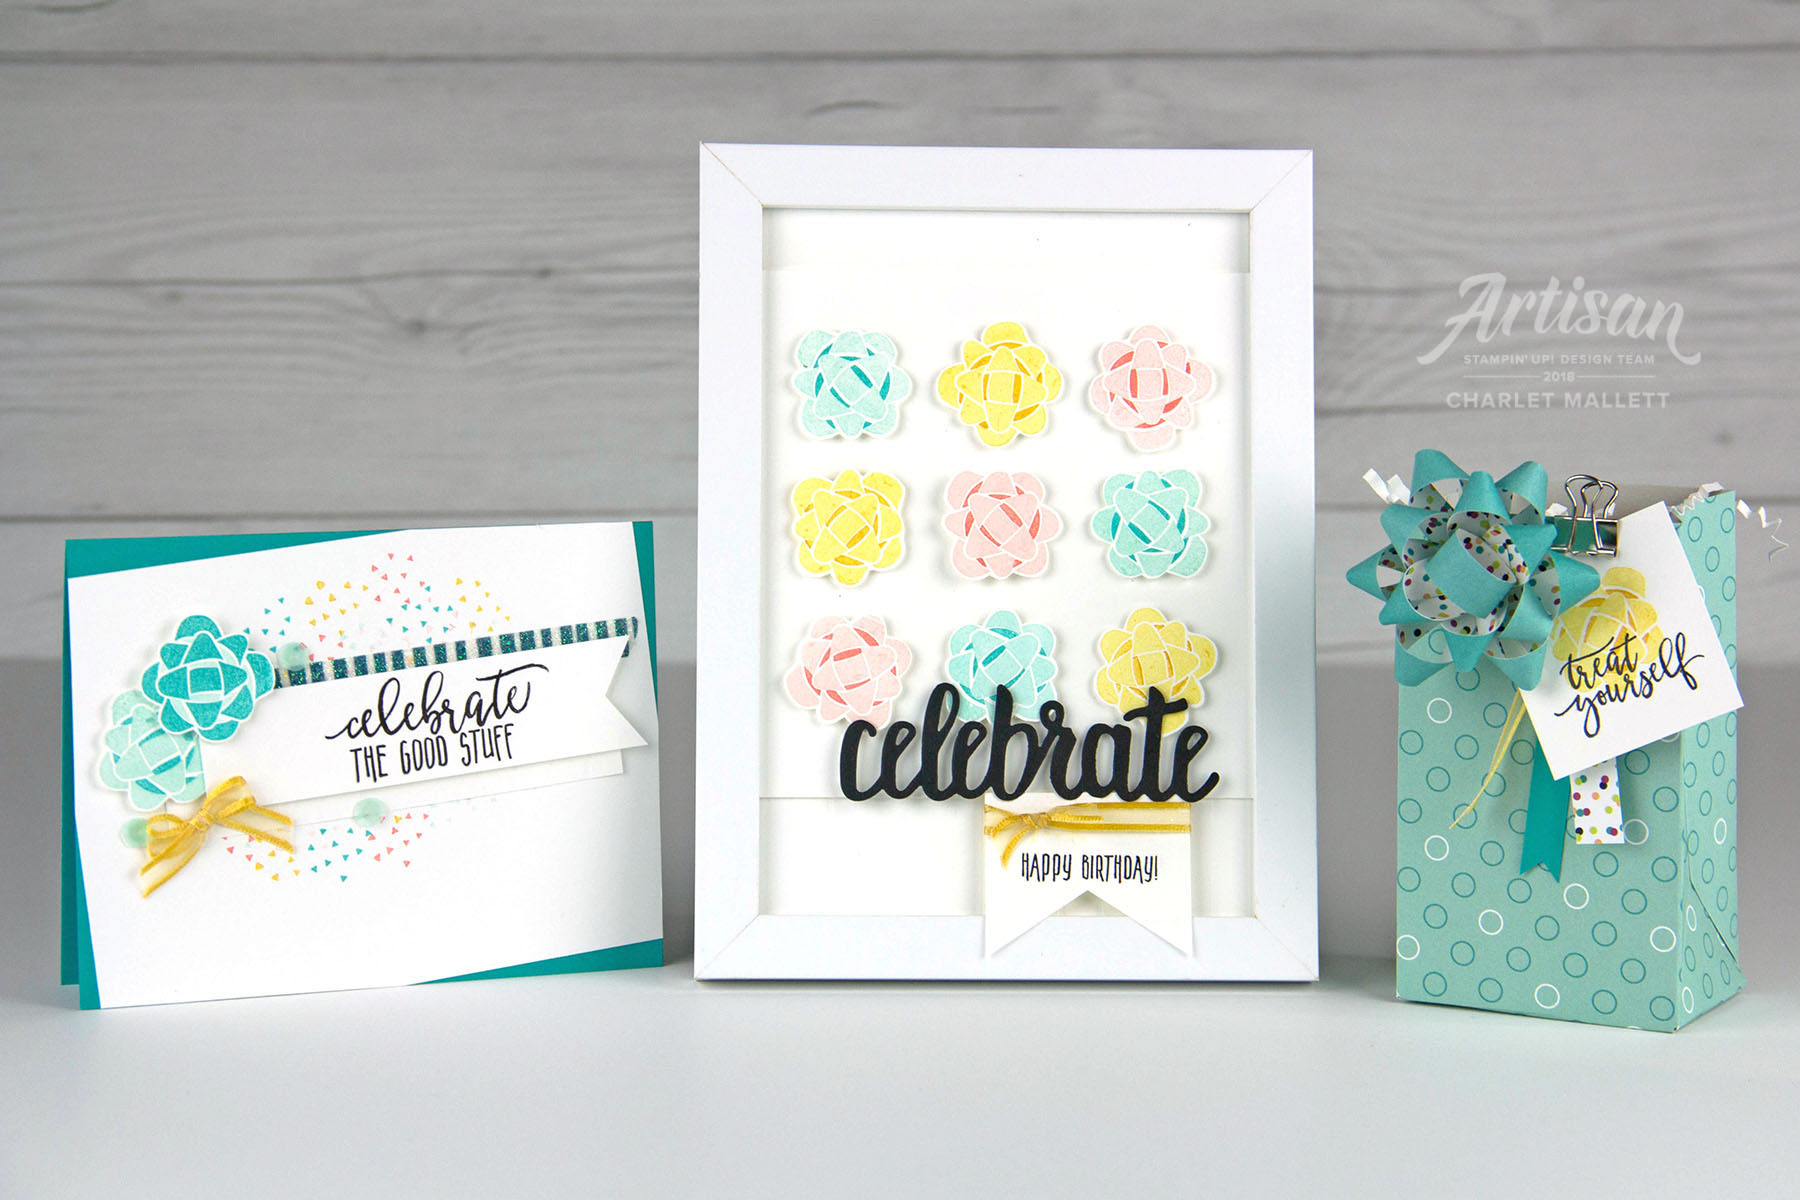 Picture Perfect Birthday projects - Charlet Mallett - Stampin' Up! Artisan Designer.